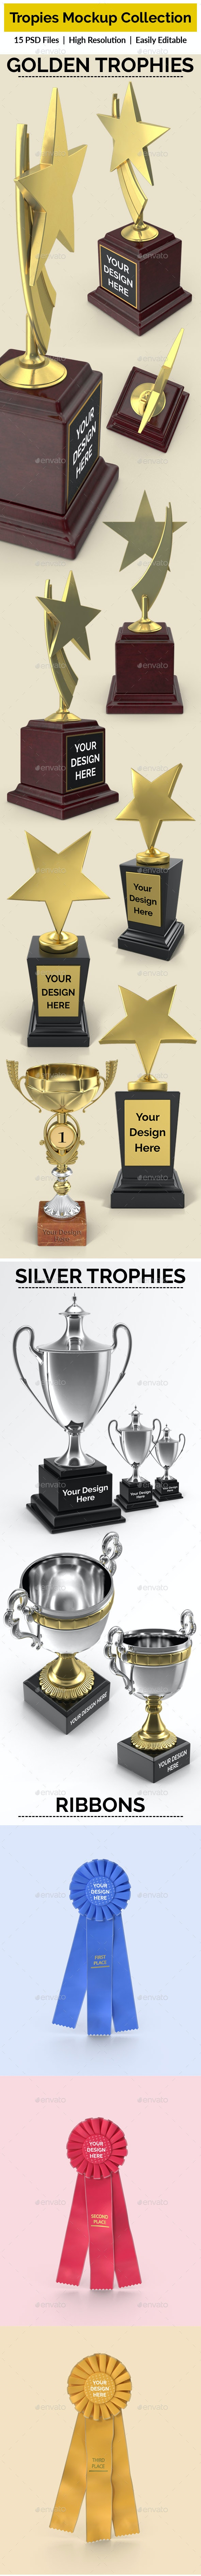 Trophies and Ribbon Mockup Collection - Miscellaneous Print